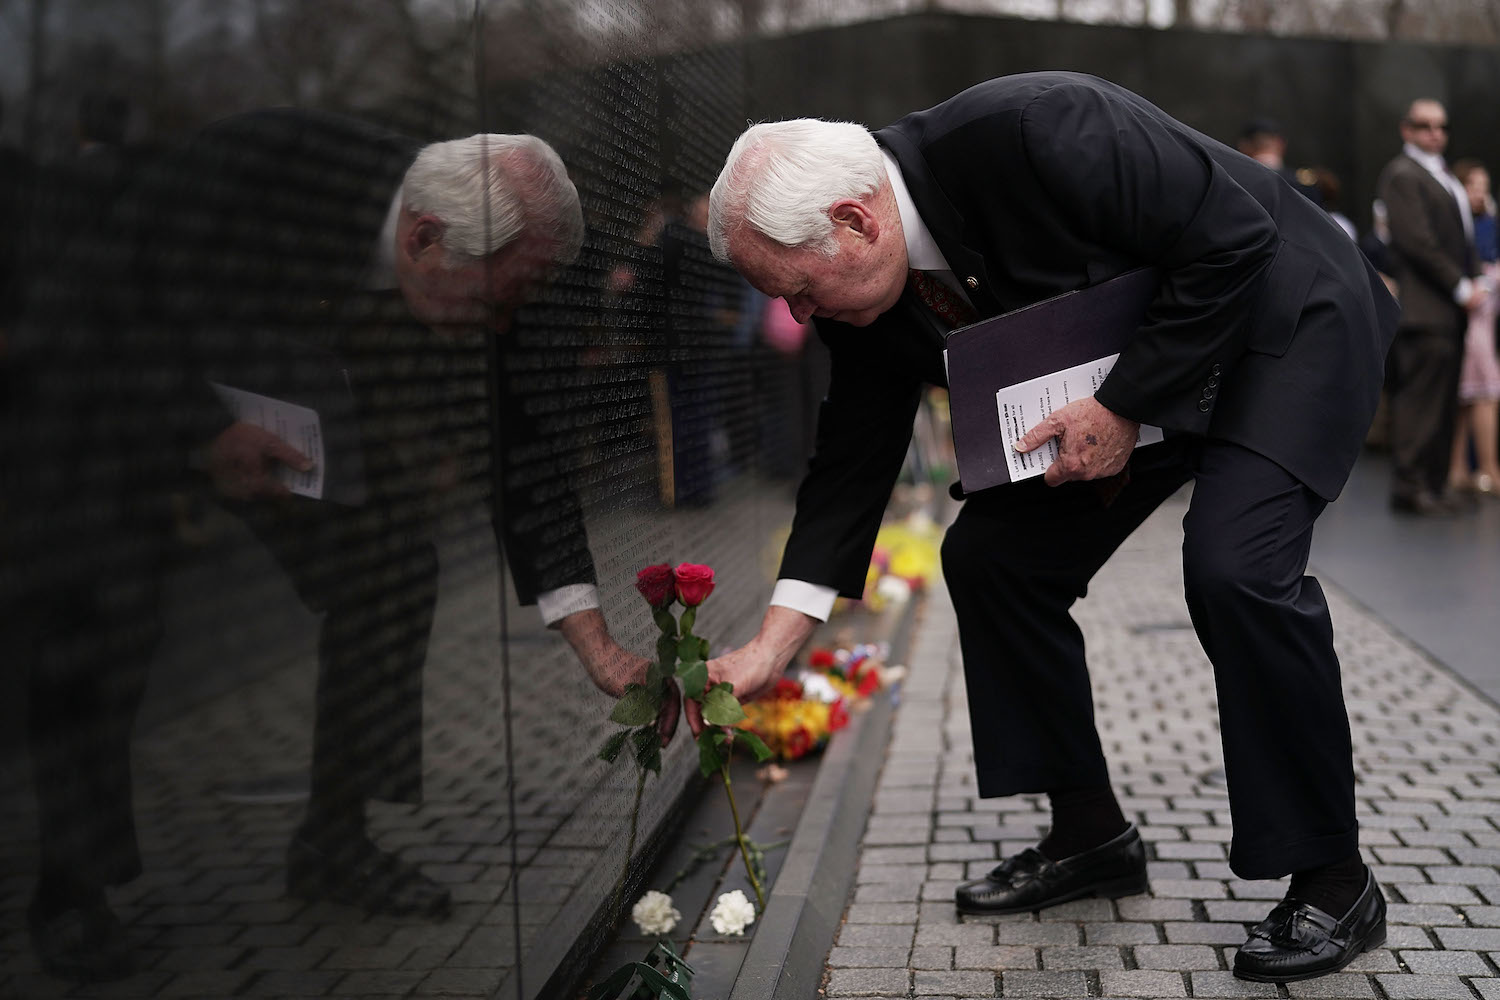 U.S. Deputy Secretary of Veterans Affairs Thomas Bowman lays a rose at the Vietnam War Memorial March 29, in Washington, DC. (Alex Wong/Getty Images)